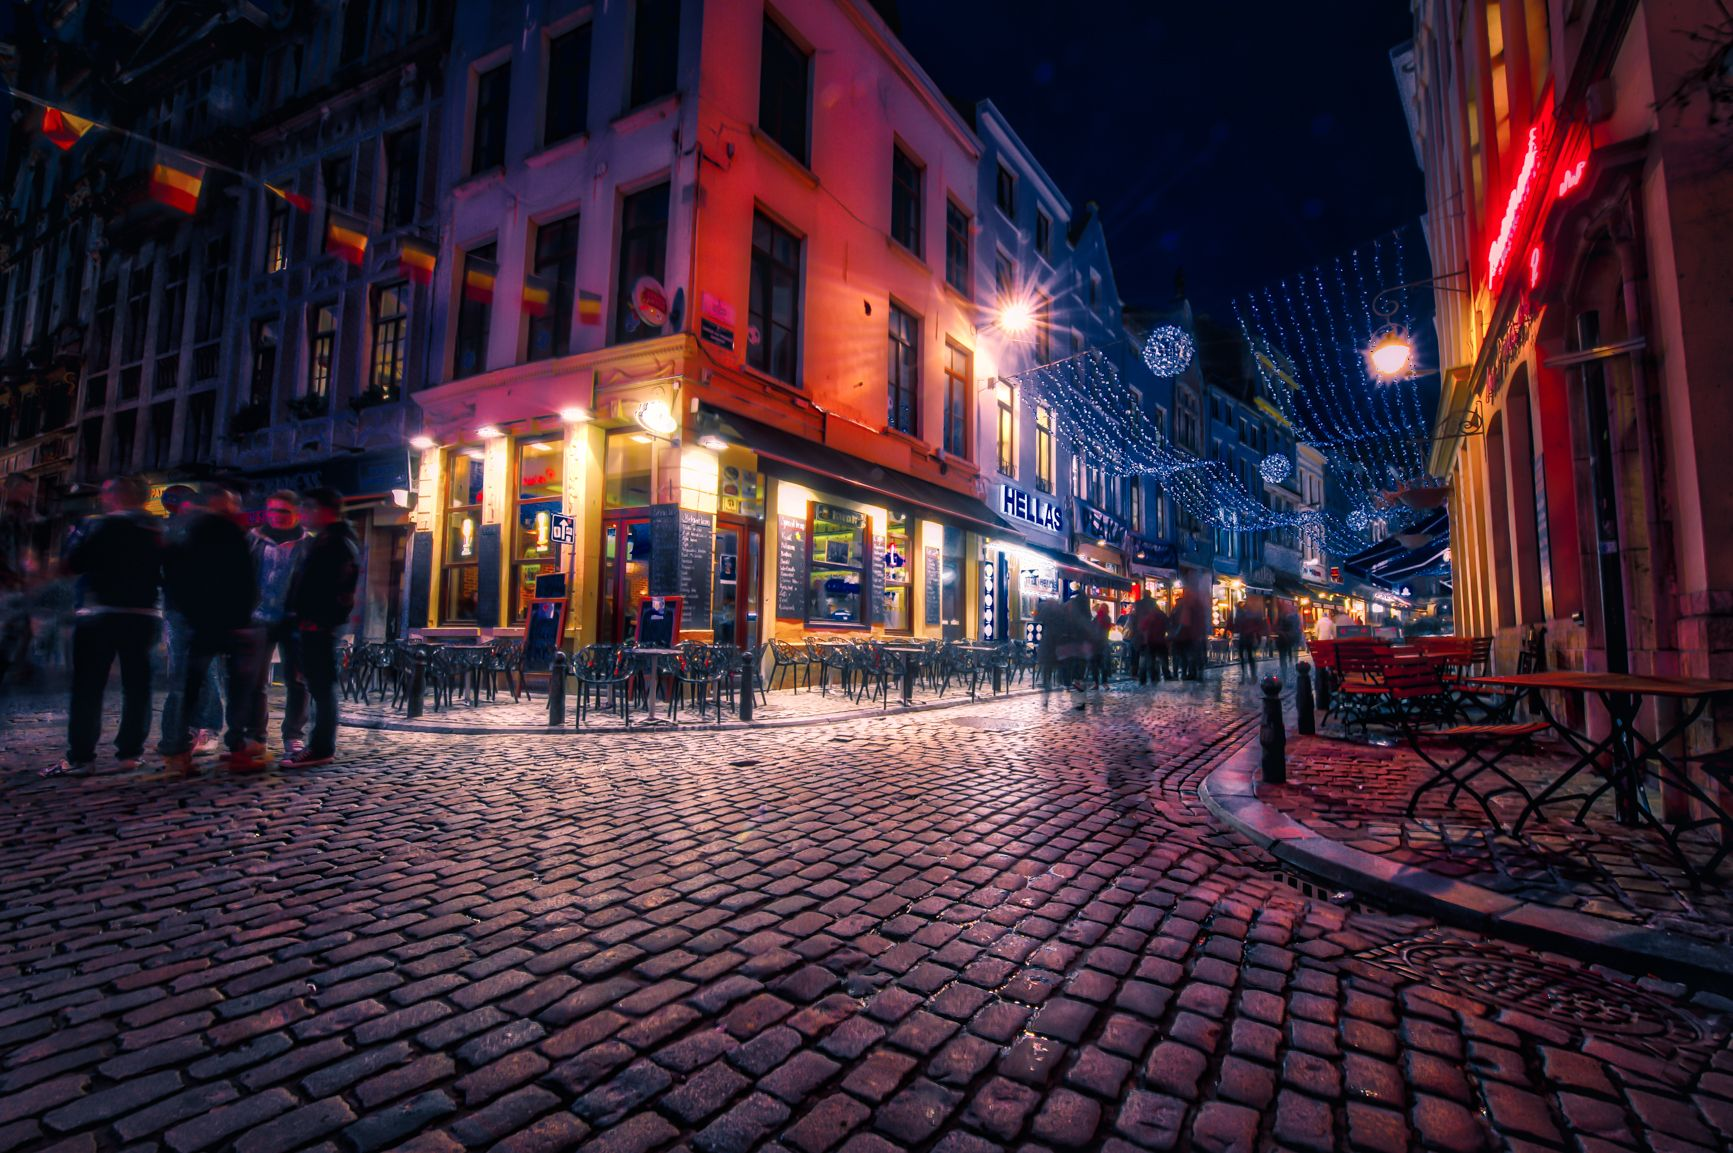 Nightfall in Brussels — Nomadic Pursuits